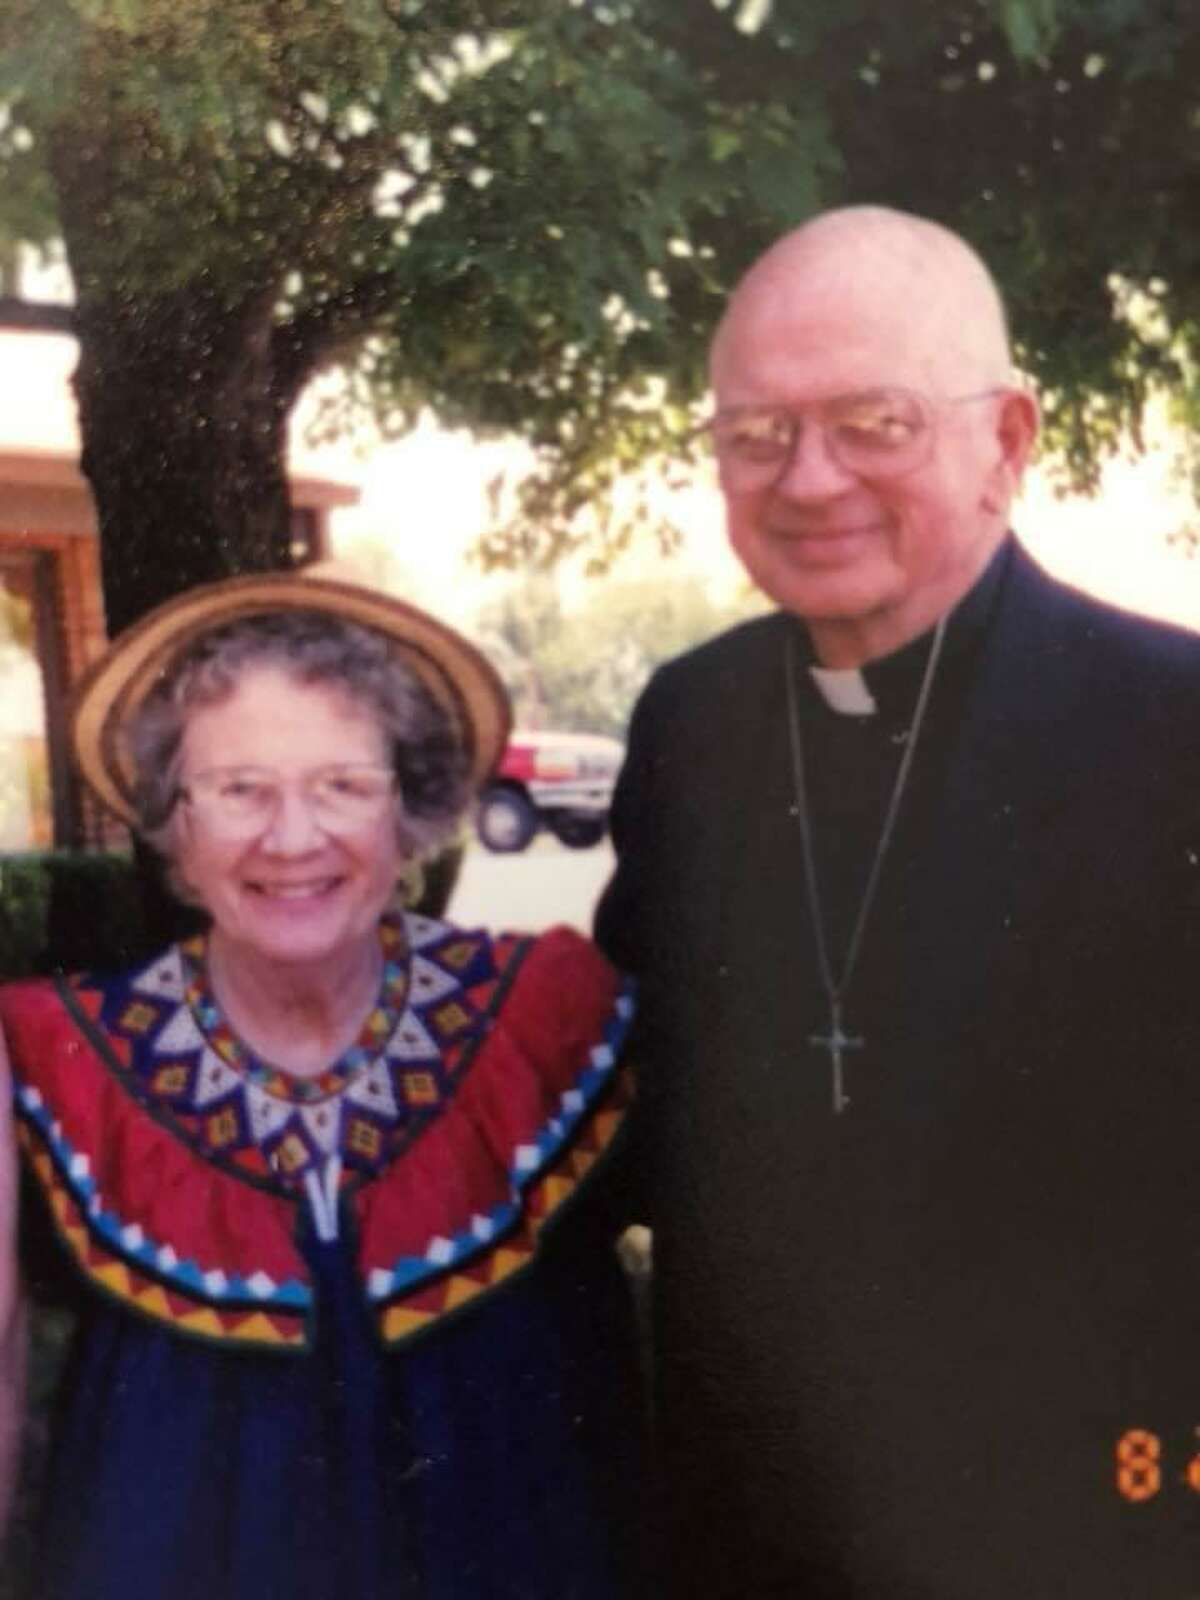 Phyllis Neumann would wear her native Panamanian hats while she and her husband Donald were in the states on sabbatical during their seven years as missionaries in Panama.